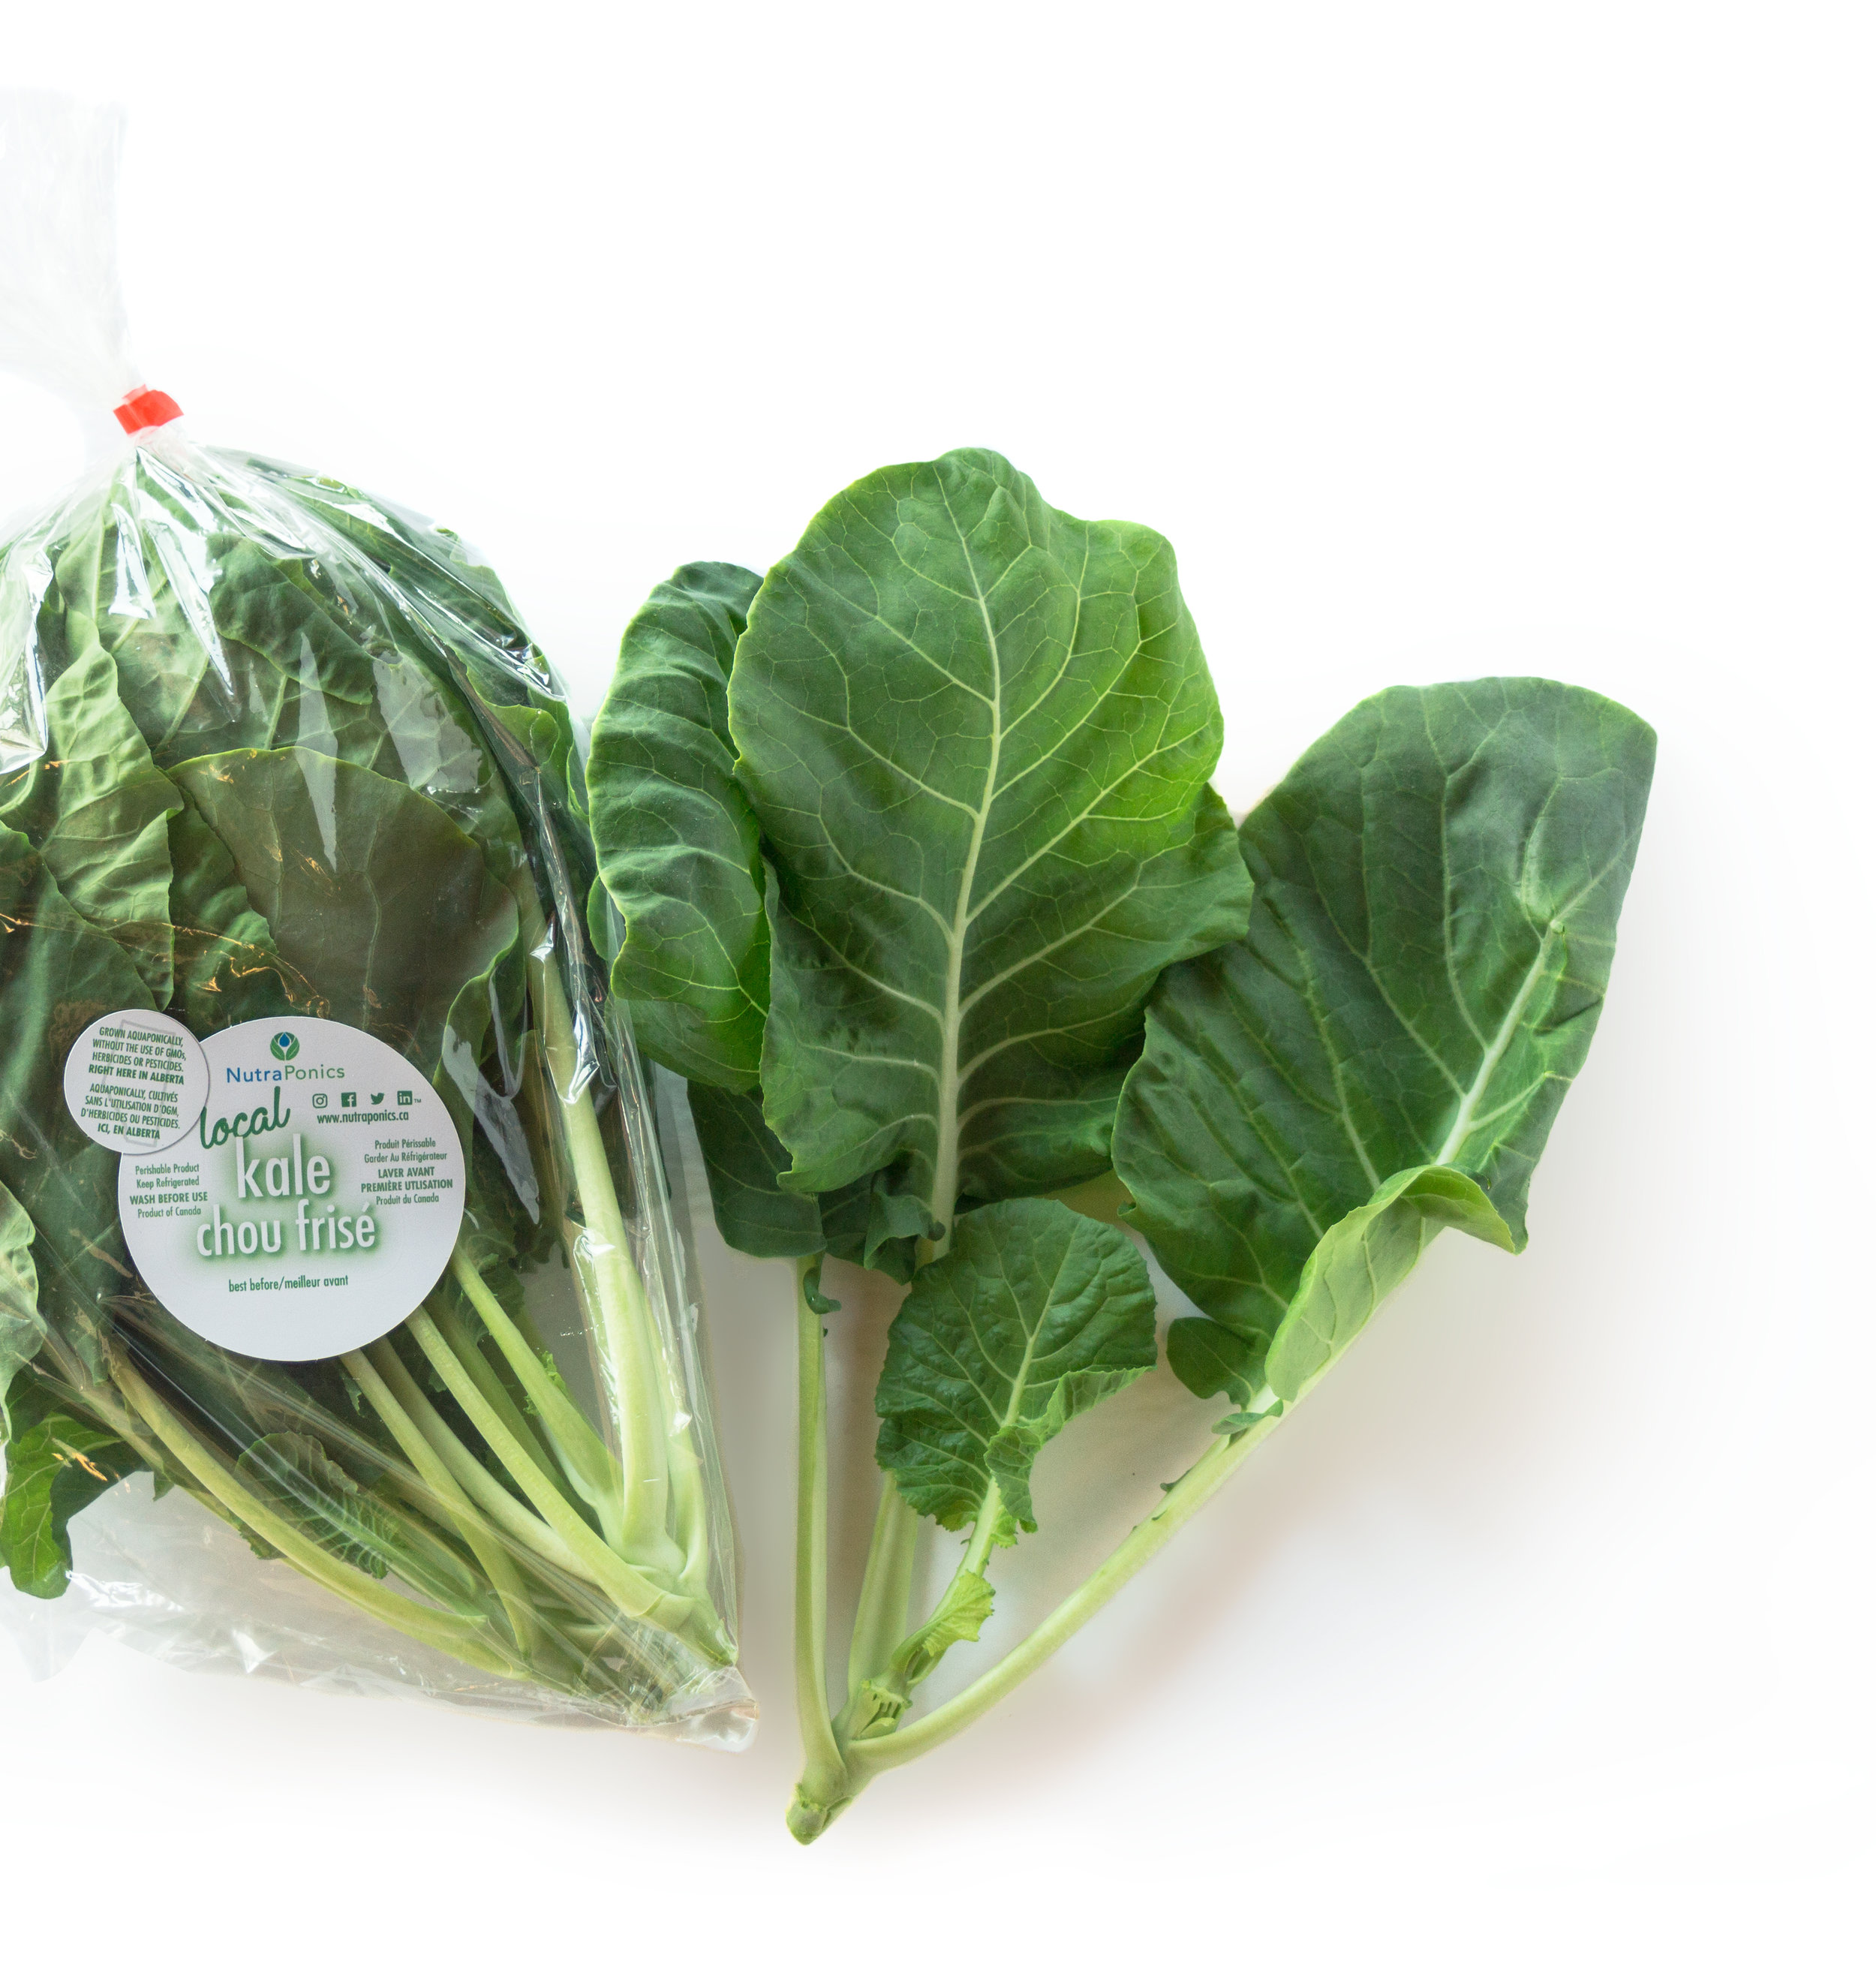 Kale - Our hybrid kale is crunchy but still very tender, like a young cabbage rather than conventional kale. The ribs are sweet and crisp and make a perfect substitute for celery! The entire leaf may be steamed, braised, stewed, fried, sautéed, baked, or left completely raw, allowing you to set course on your own mouth feel adventure!